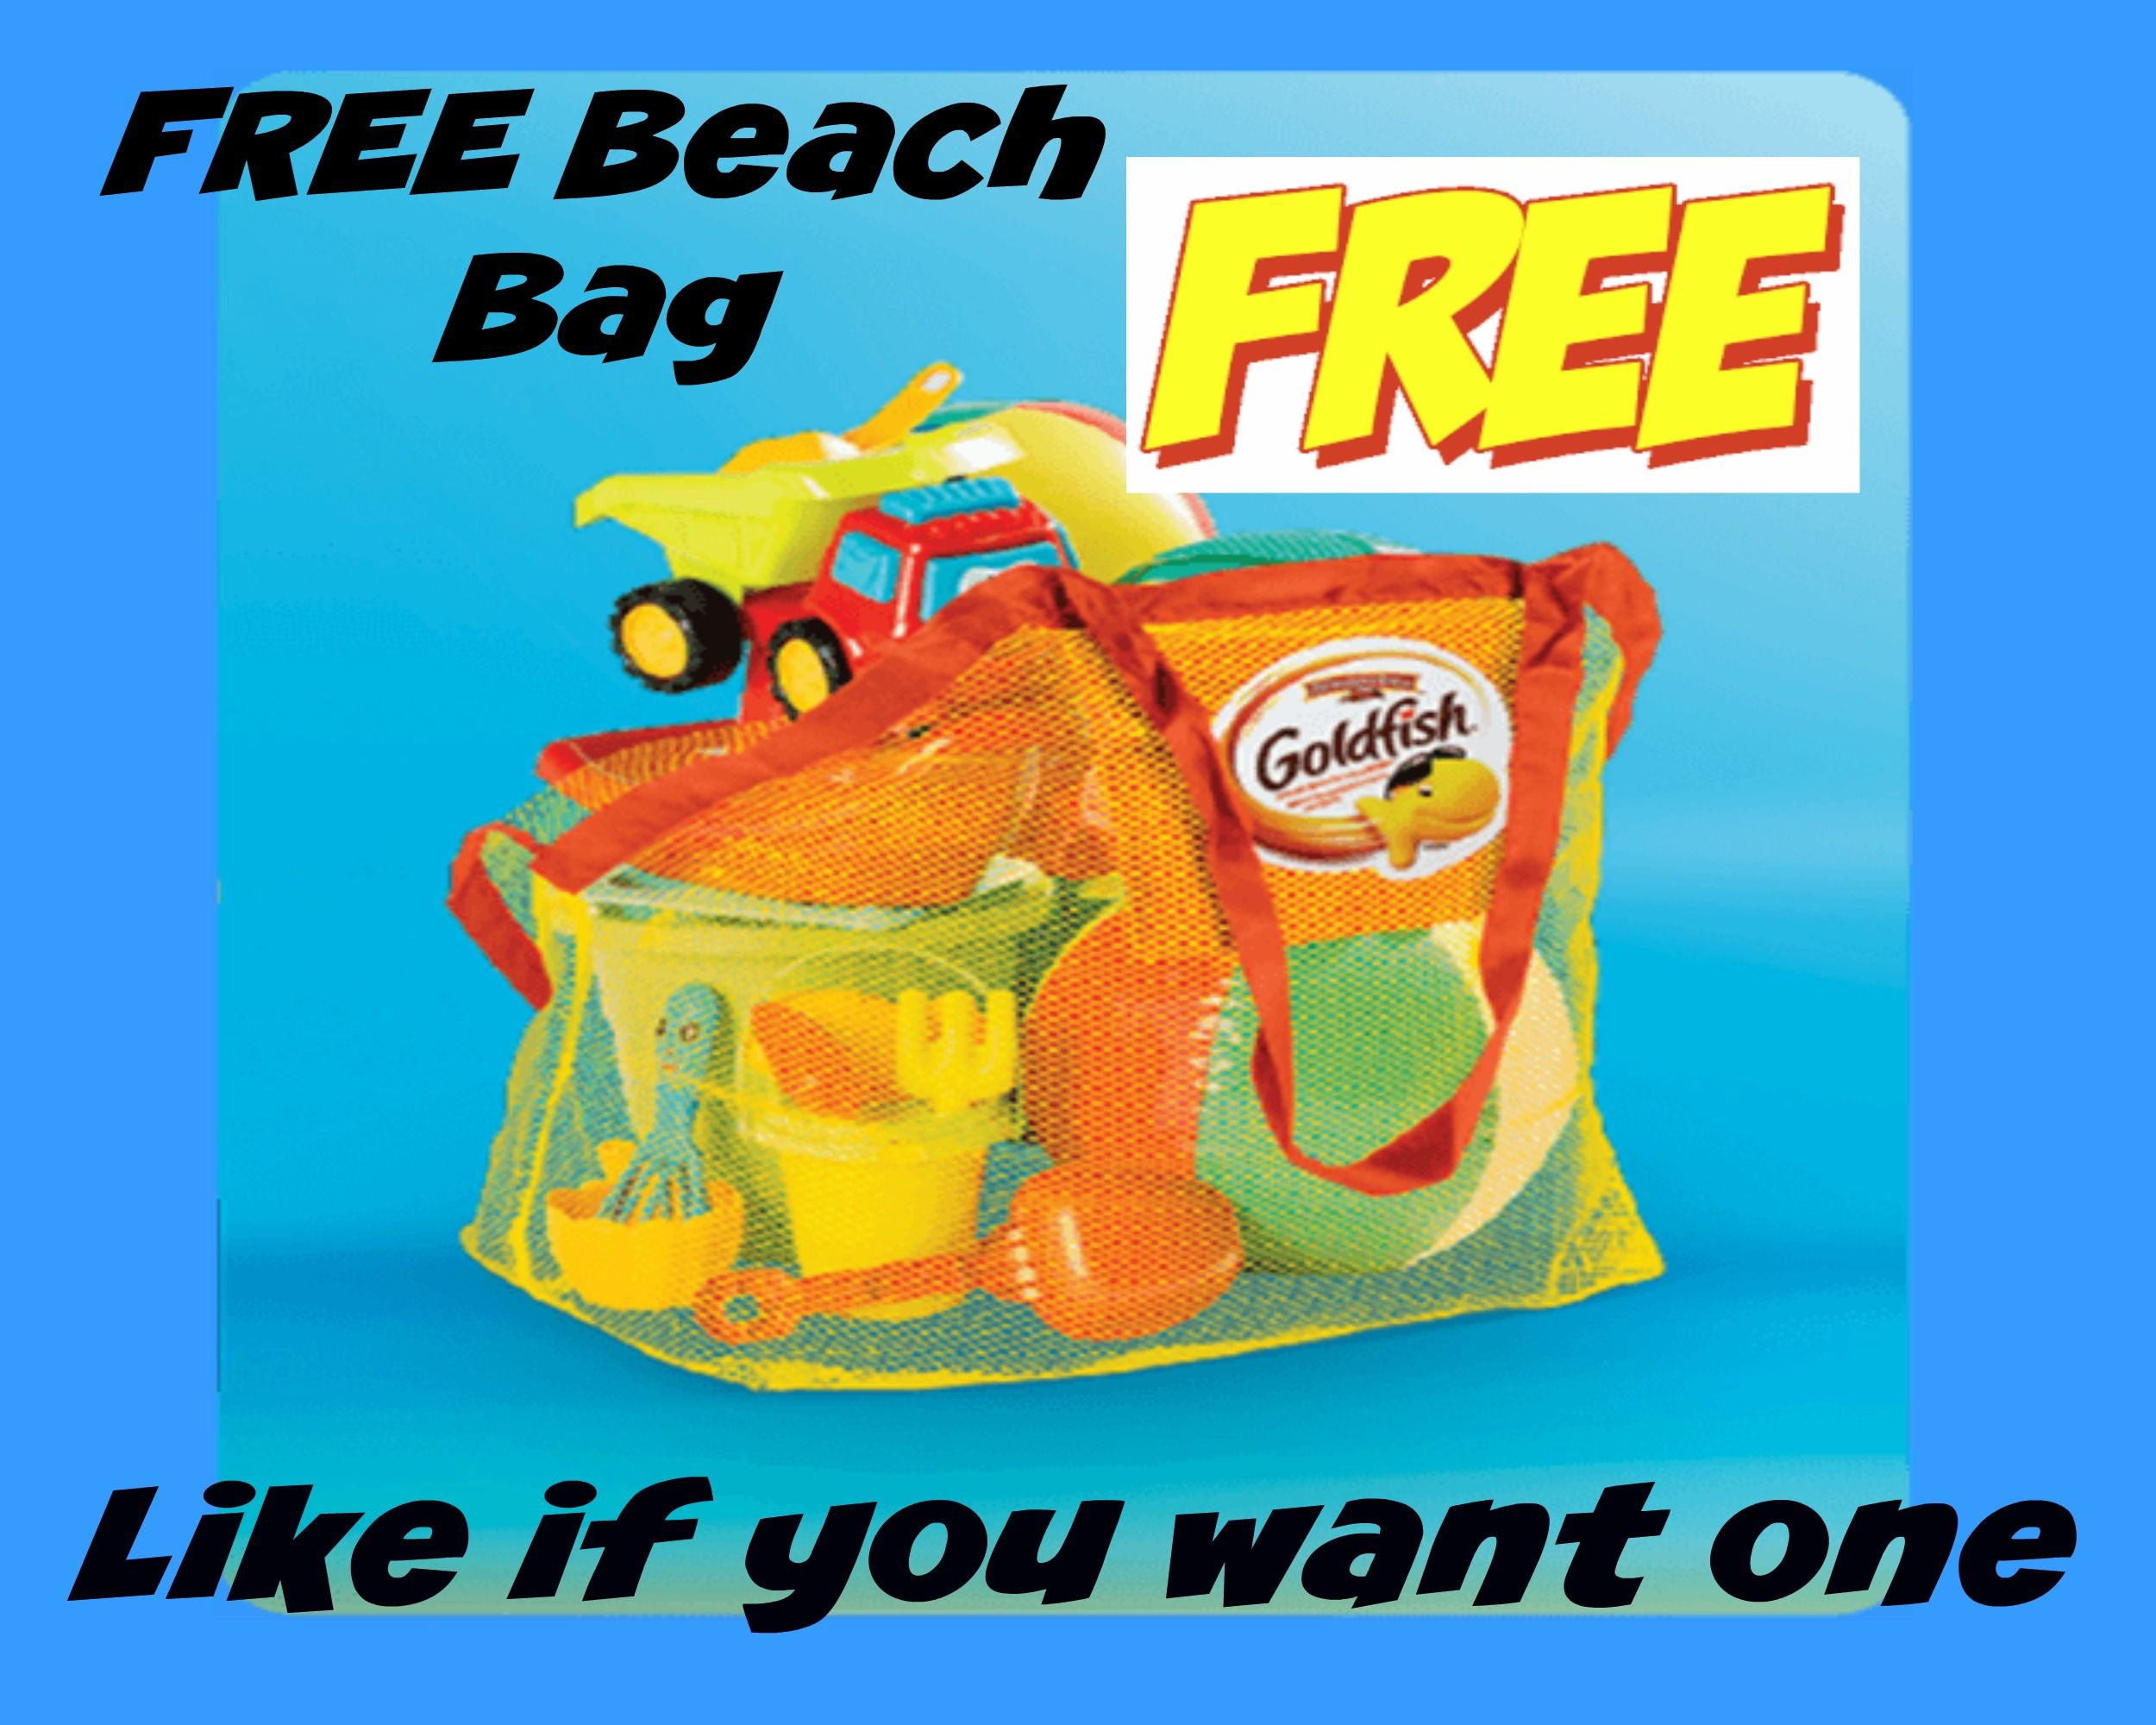 FREE GoldFish Beach Bag With Purchase (While Supplies Last) http://www.lavahotdeals.com/ca/cheap/free-goldfish-beach-bag-purchase-supplies/94097